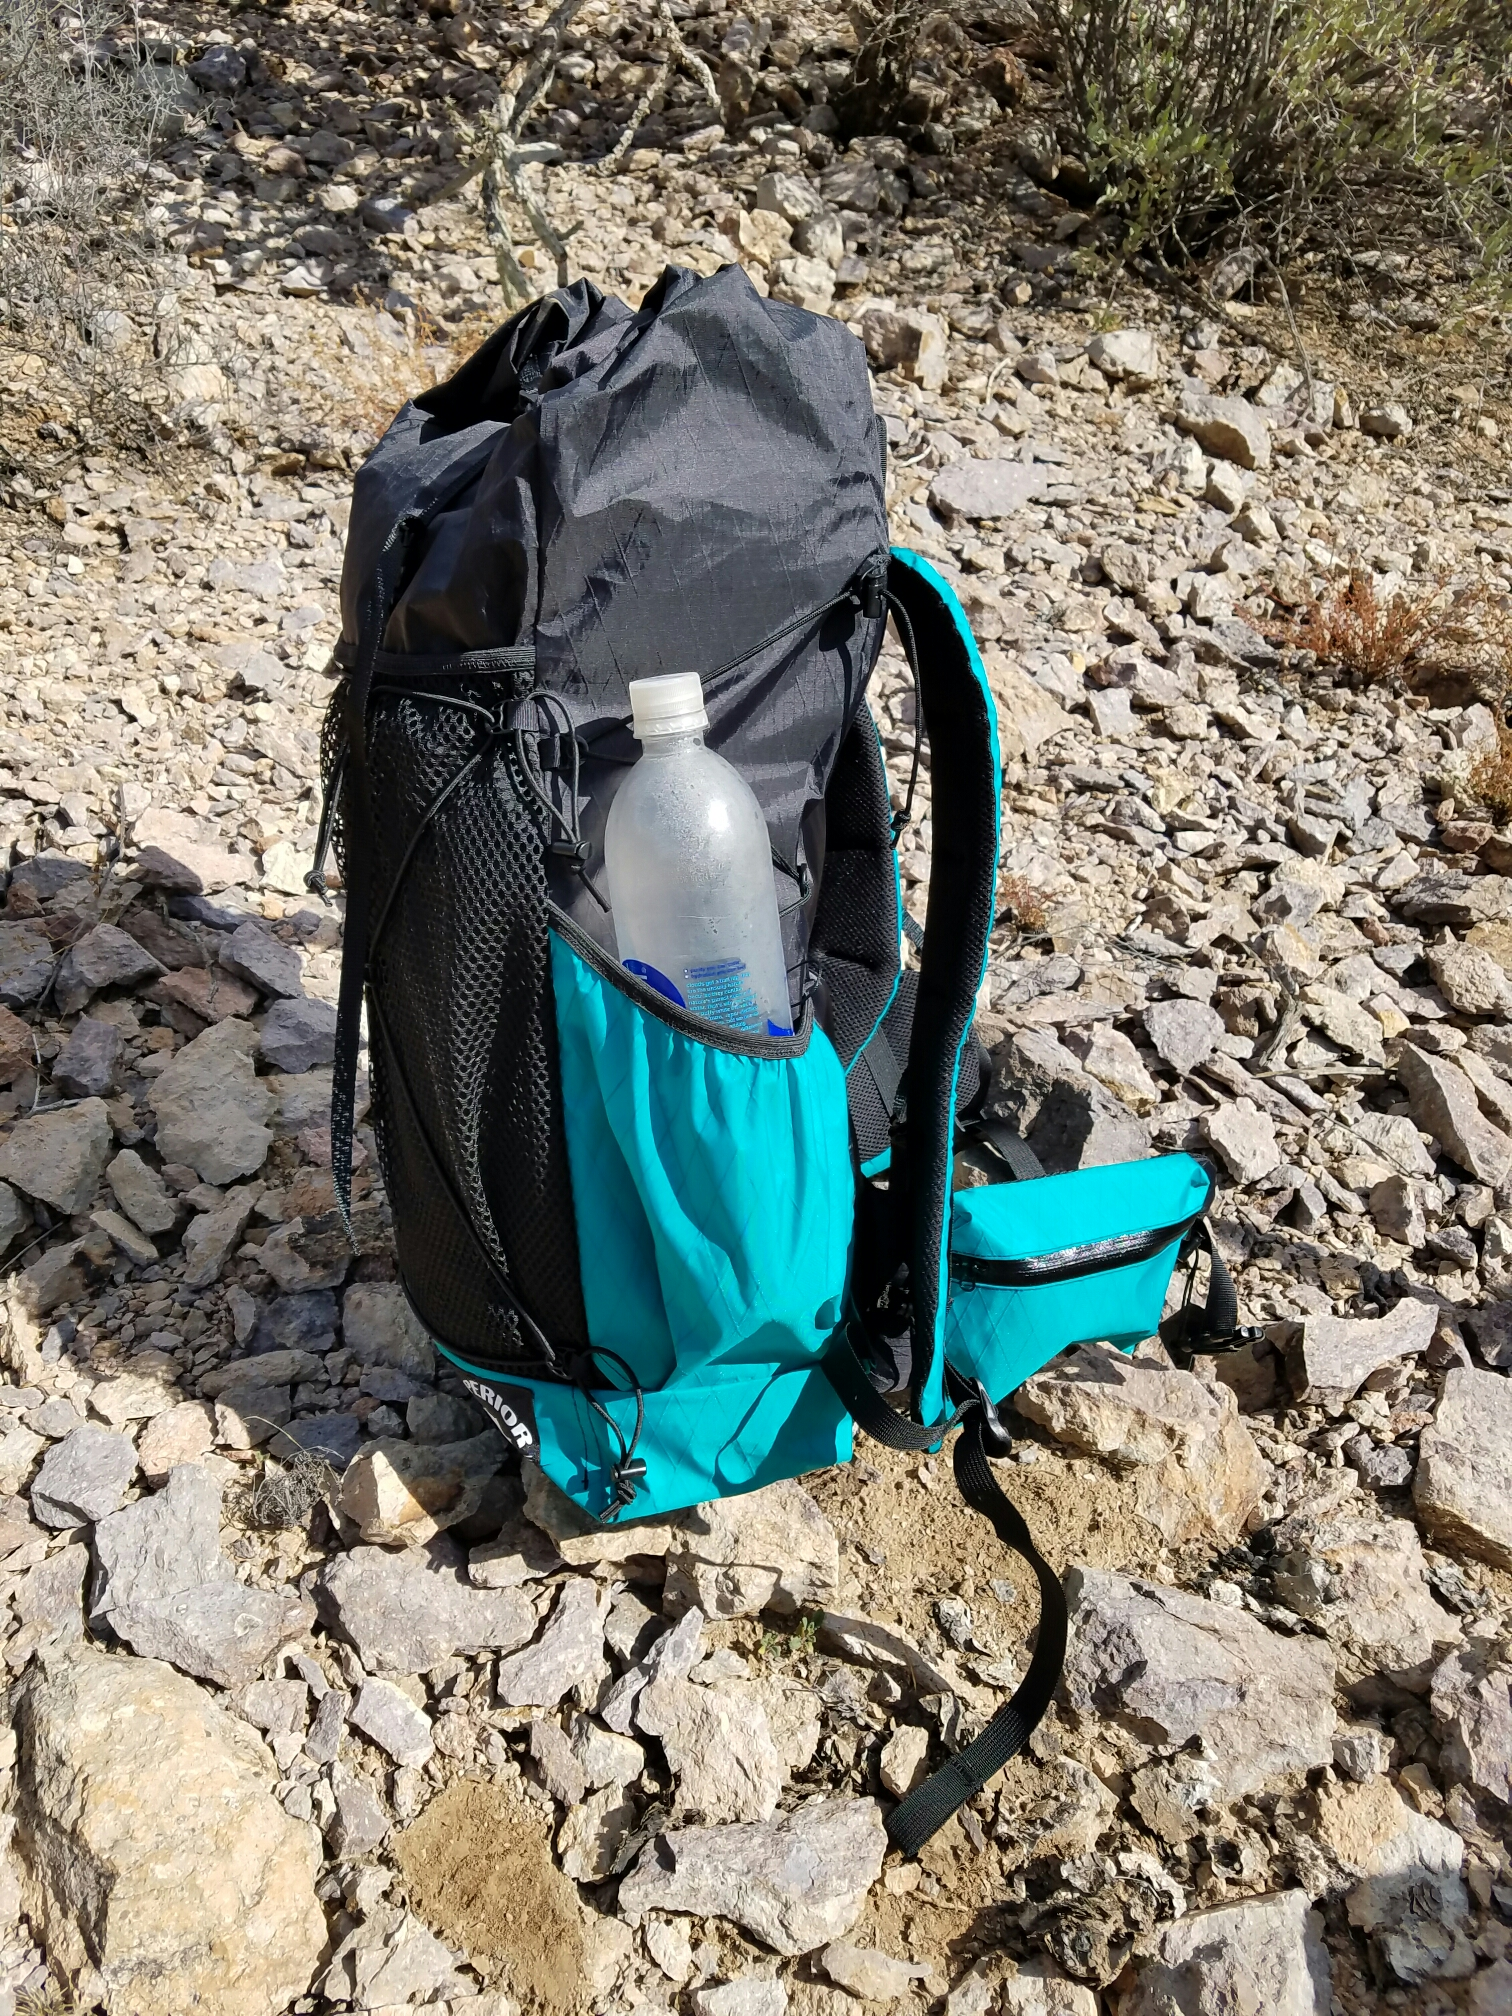 The Superior Wilderness Designs 35 liter pack (it s actually more than 35  liters when you include the outside mesh pocket a41d3f2d7f85